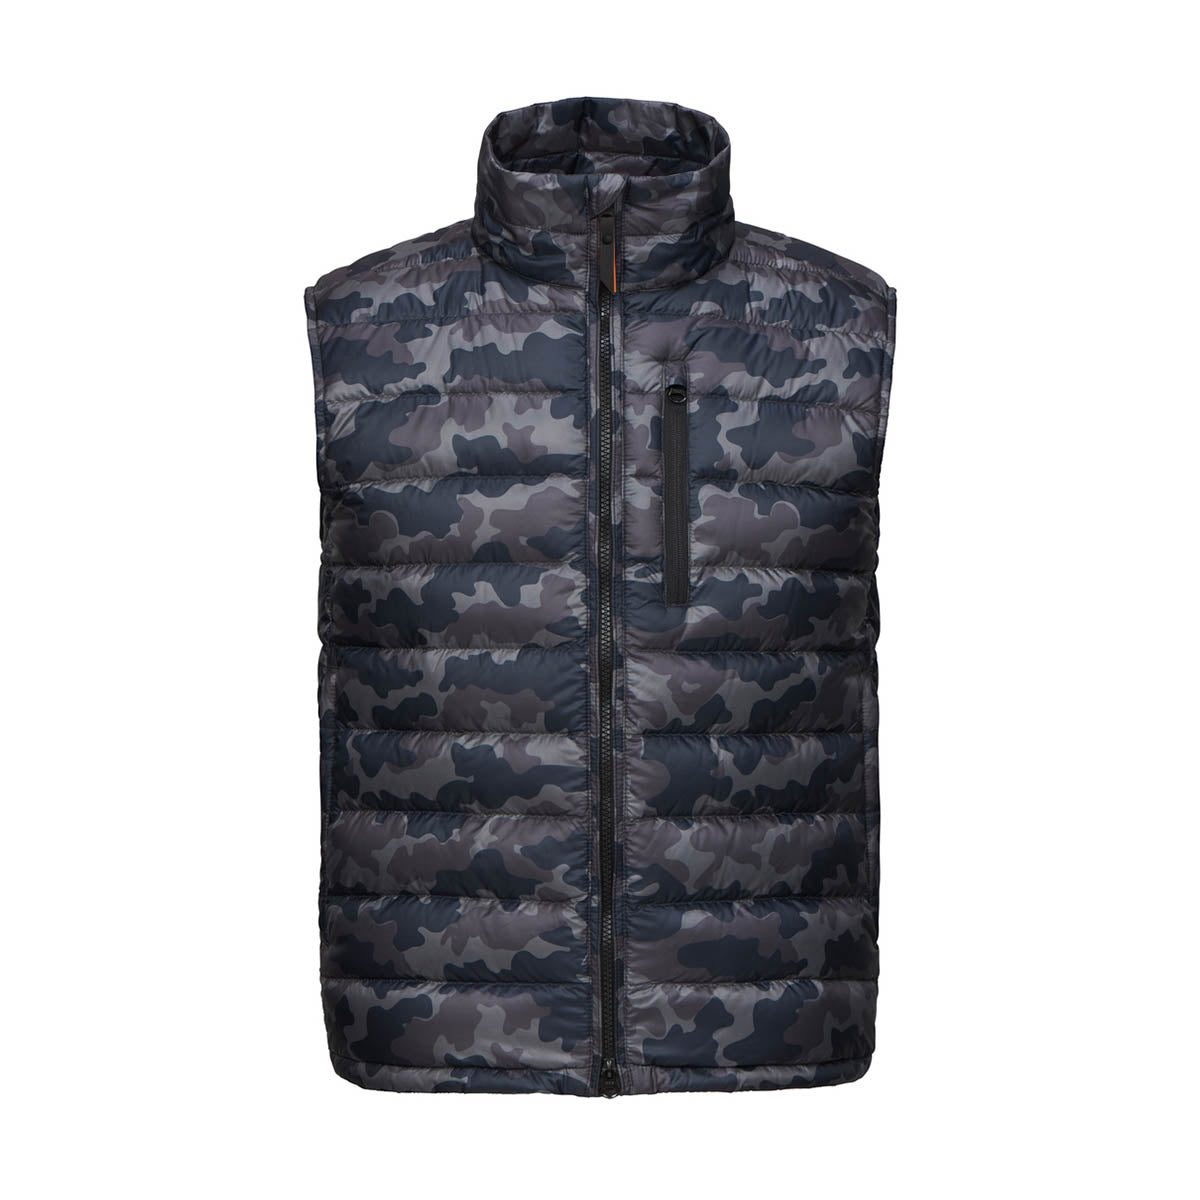 Portland II Vest - background::white,variant::Night Camo